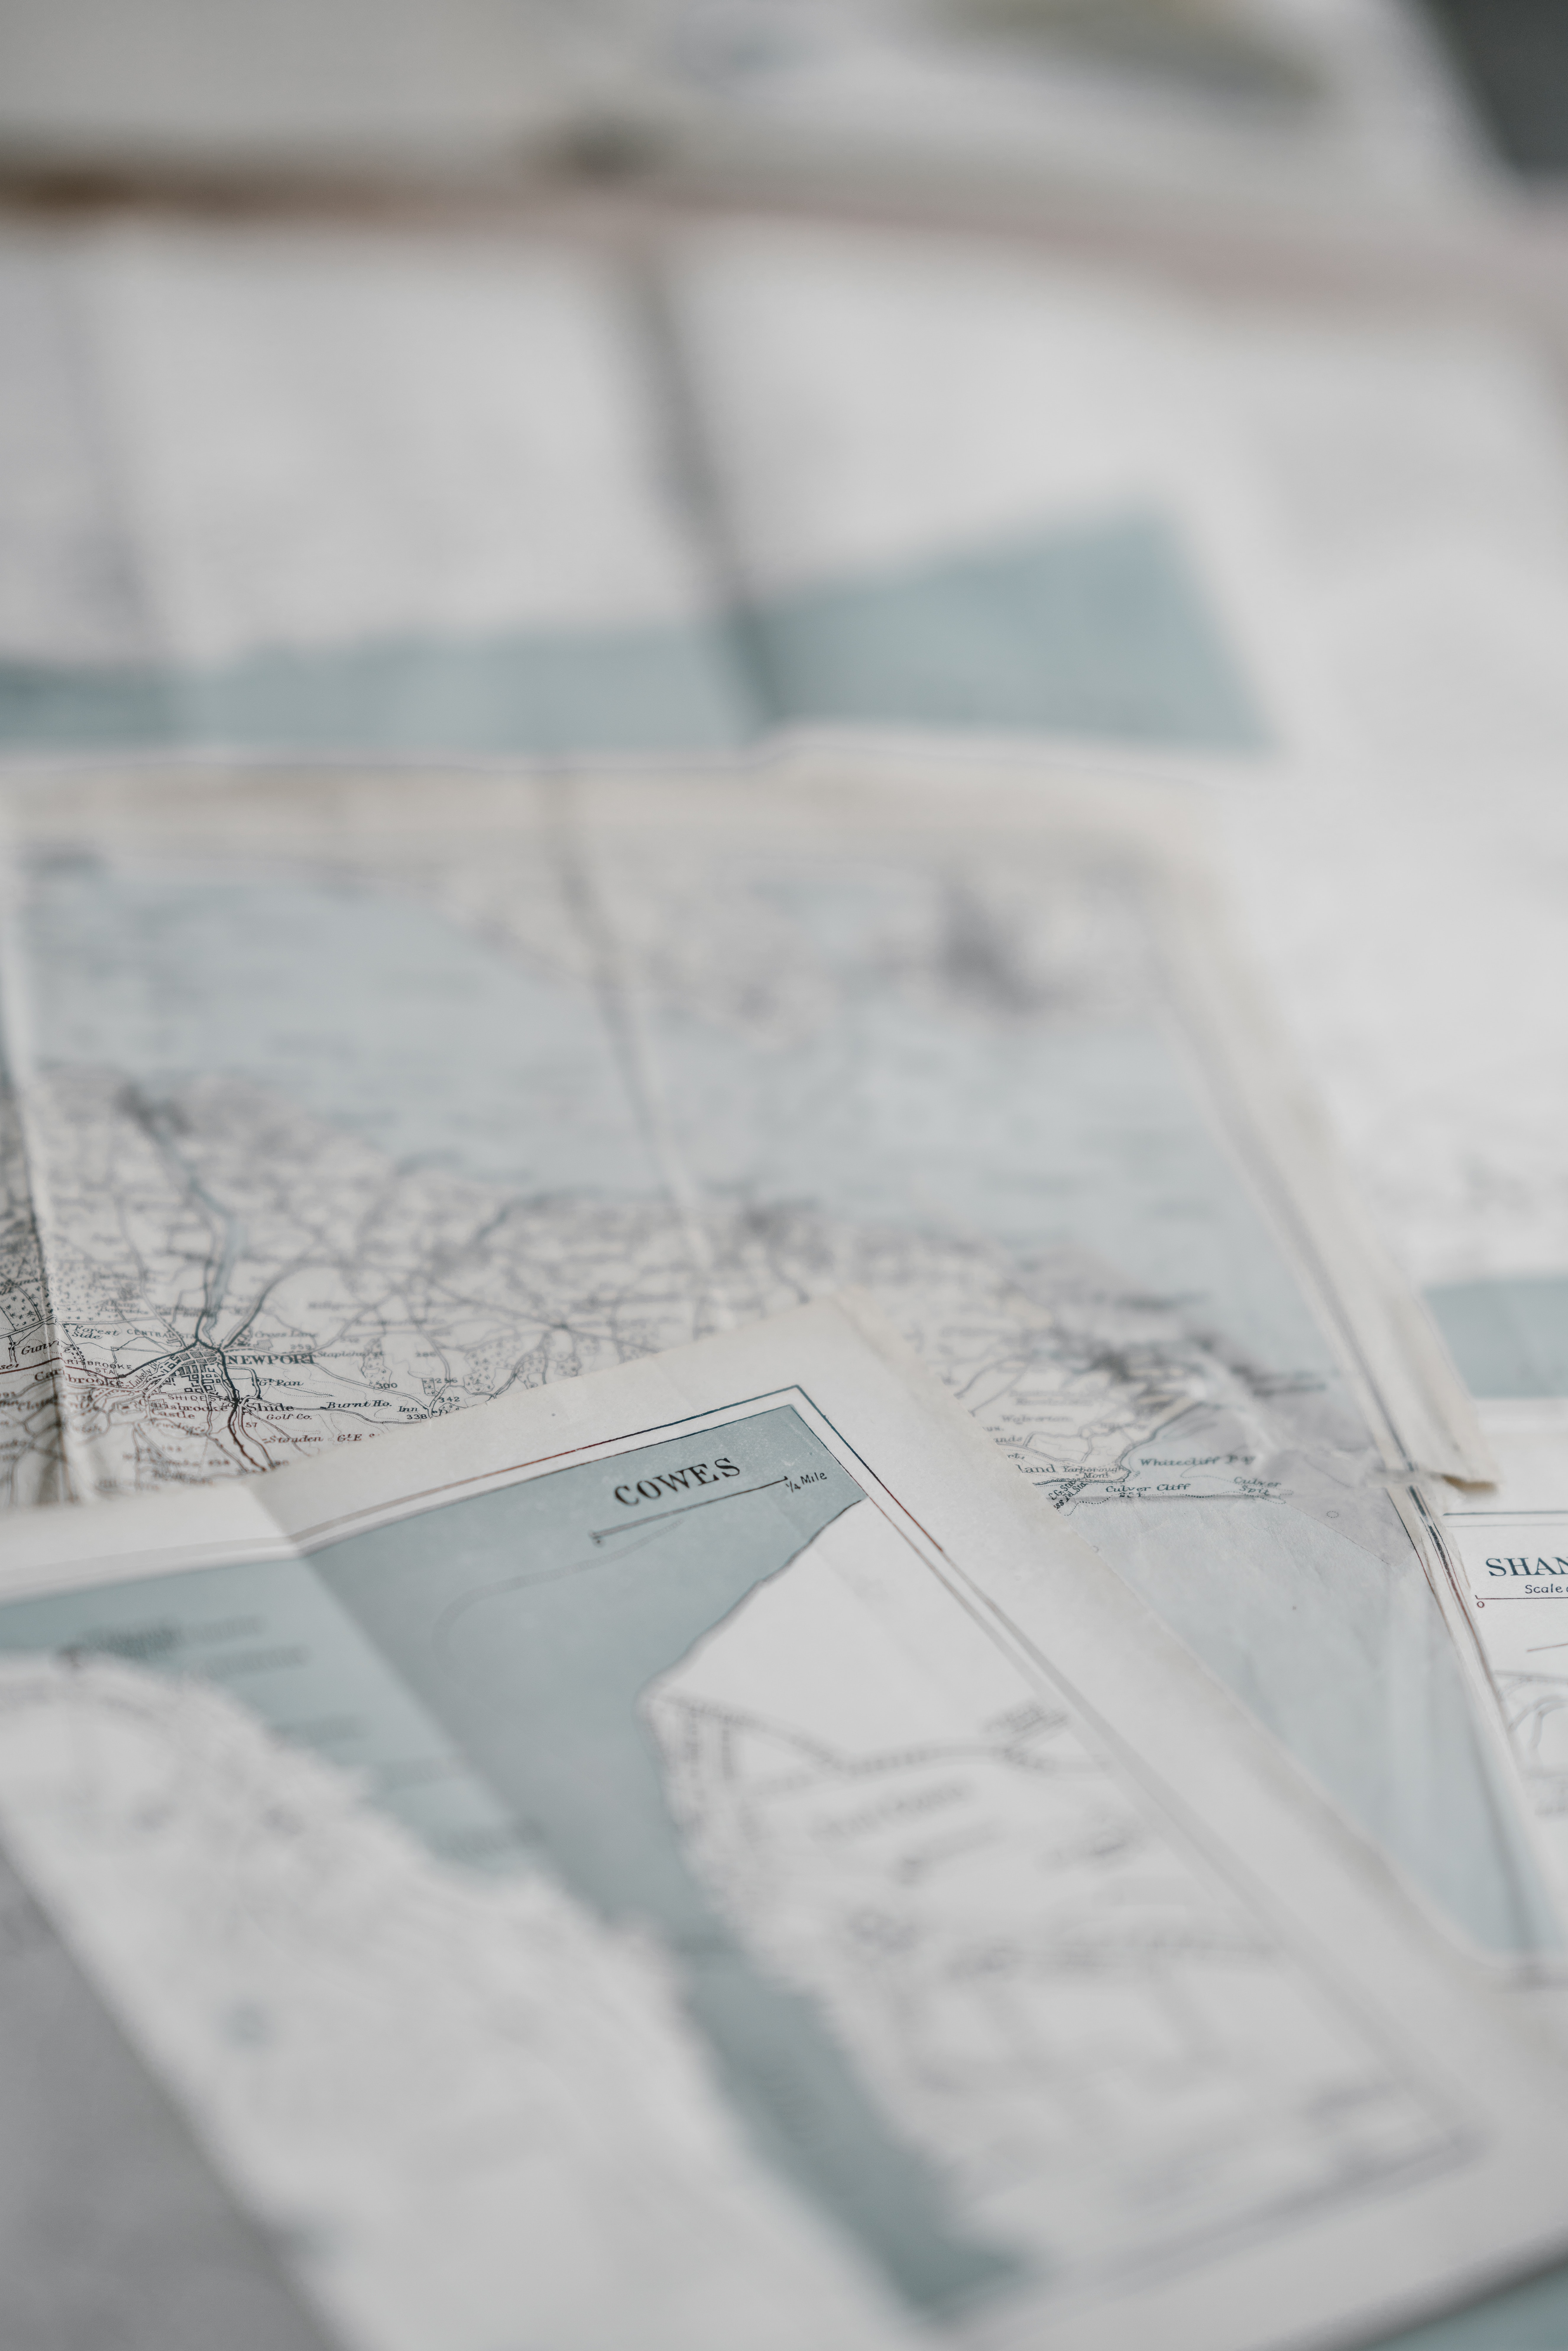 maps on top of each other